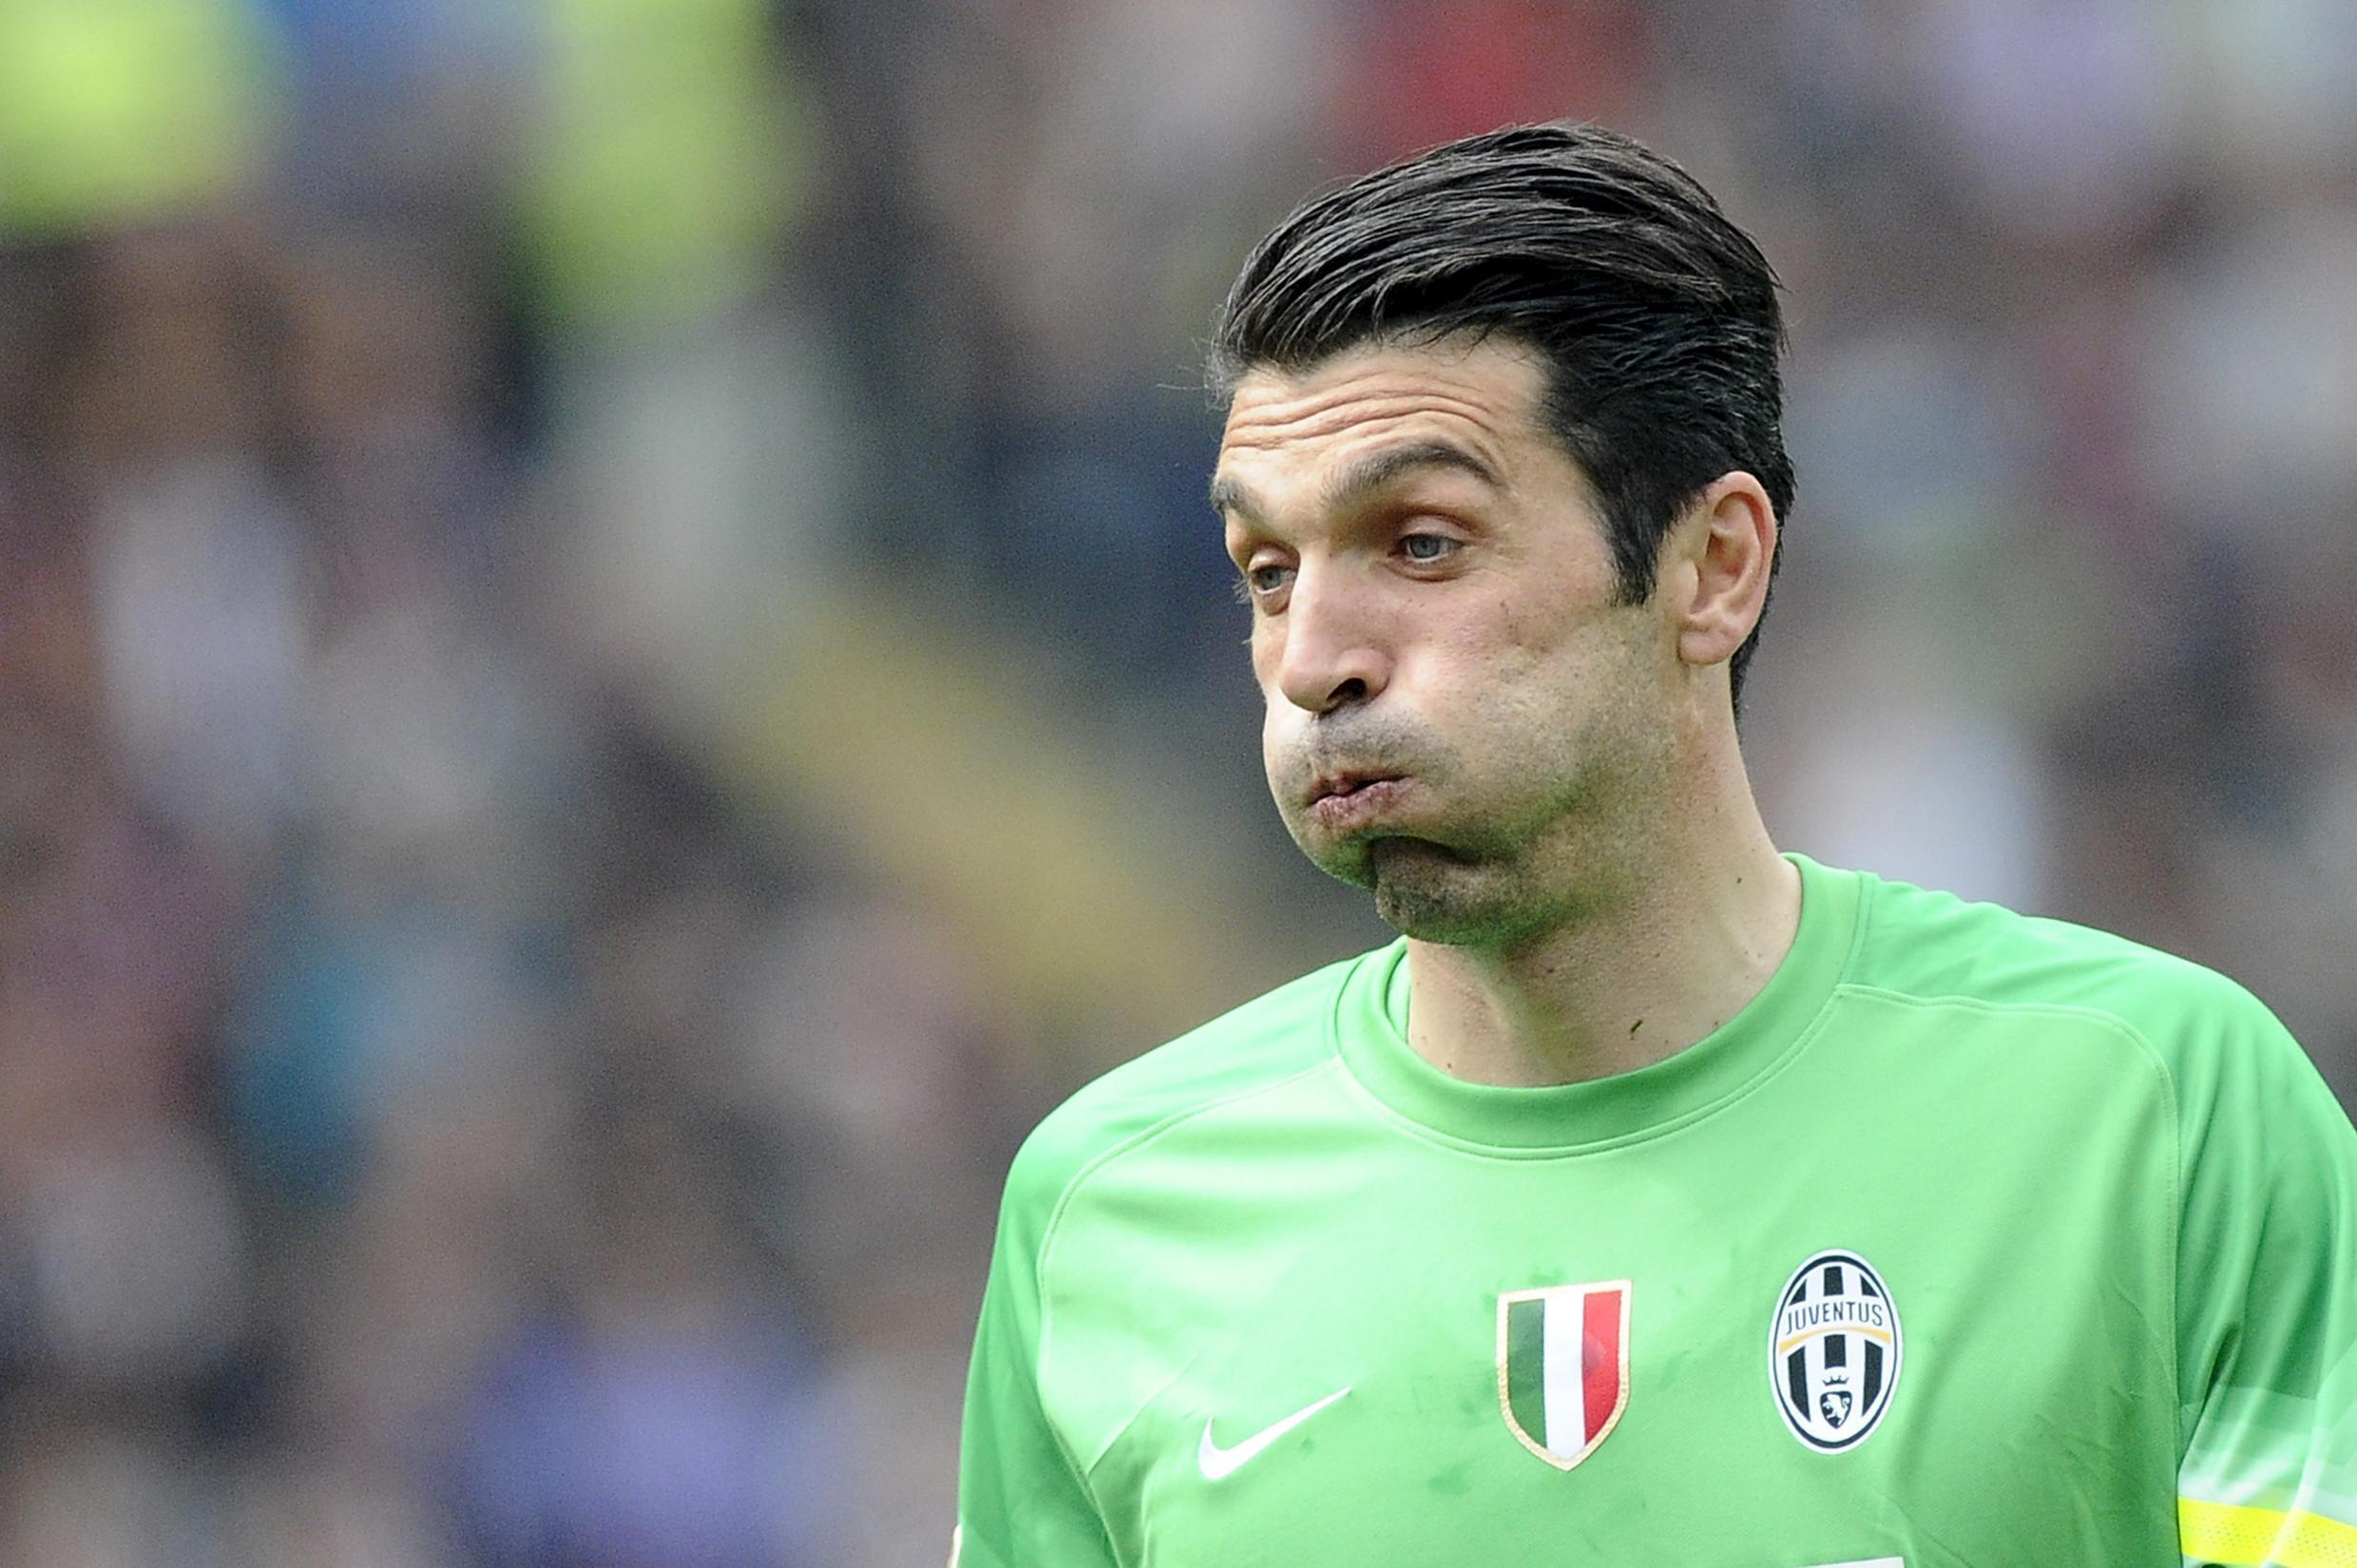 Juventus goalkeeper Gianluigi Buffon has been in imperious form during his side's defence of their Serie A title.